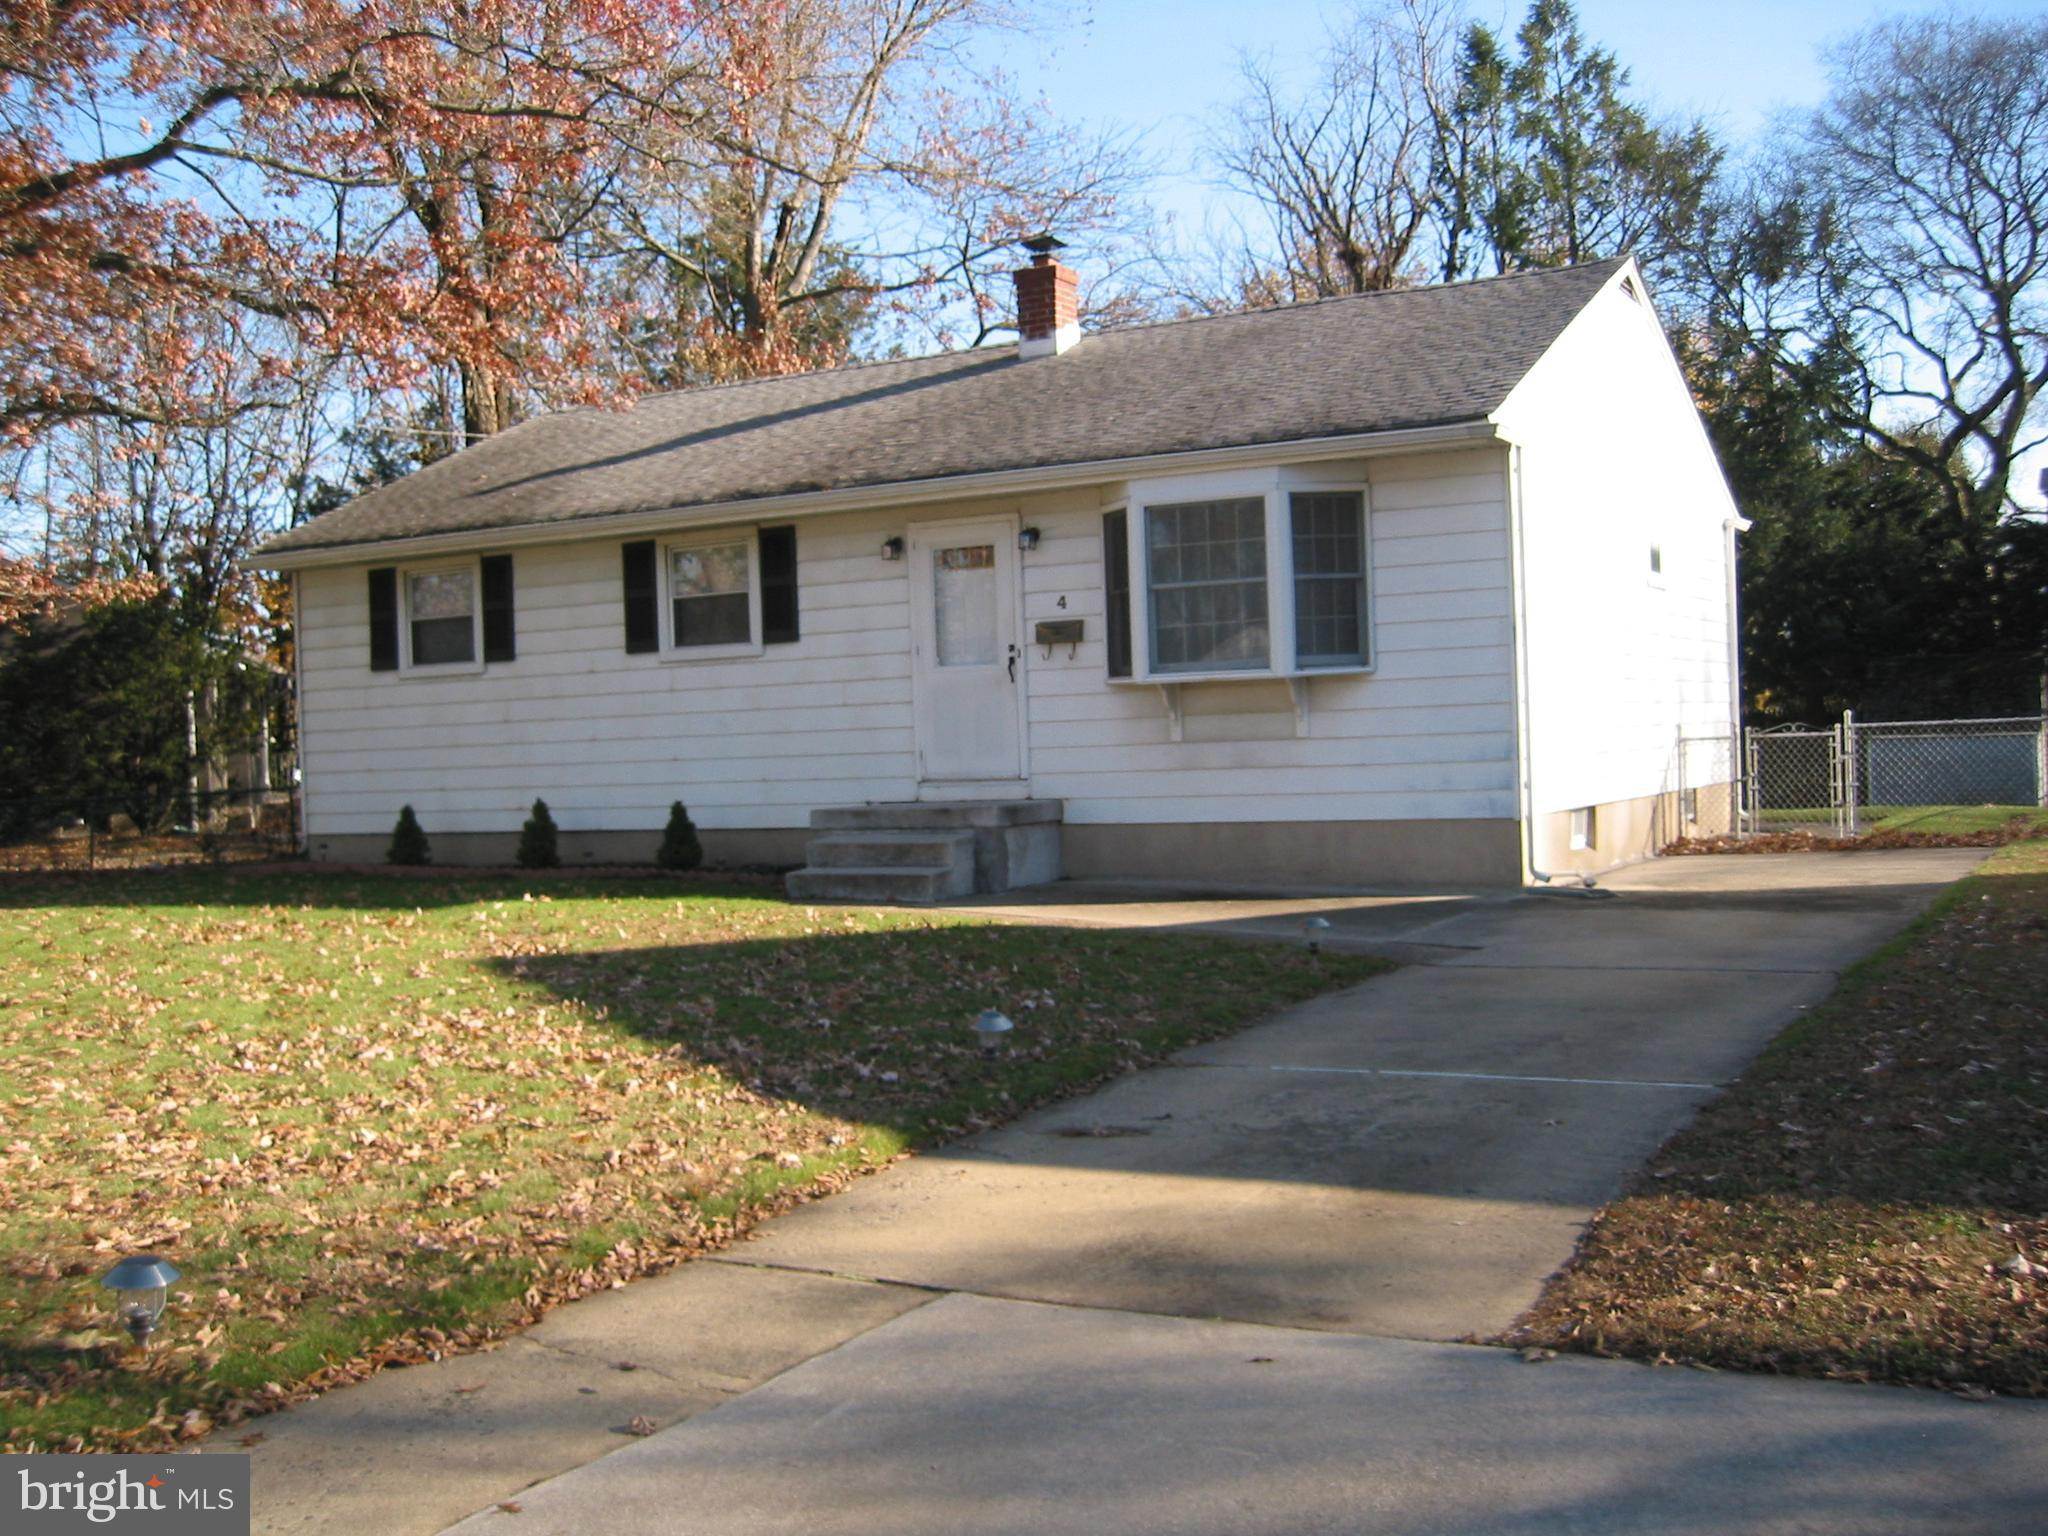 Exterior Front View with Driveway